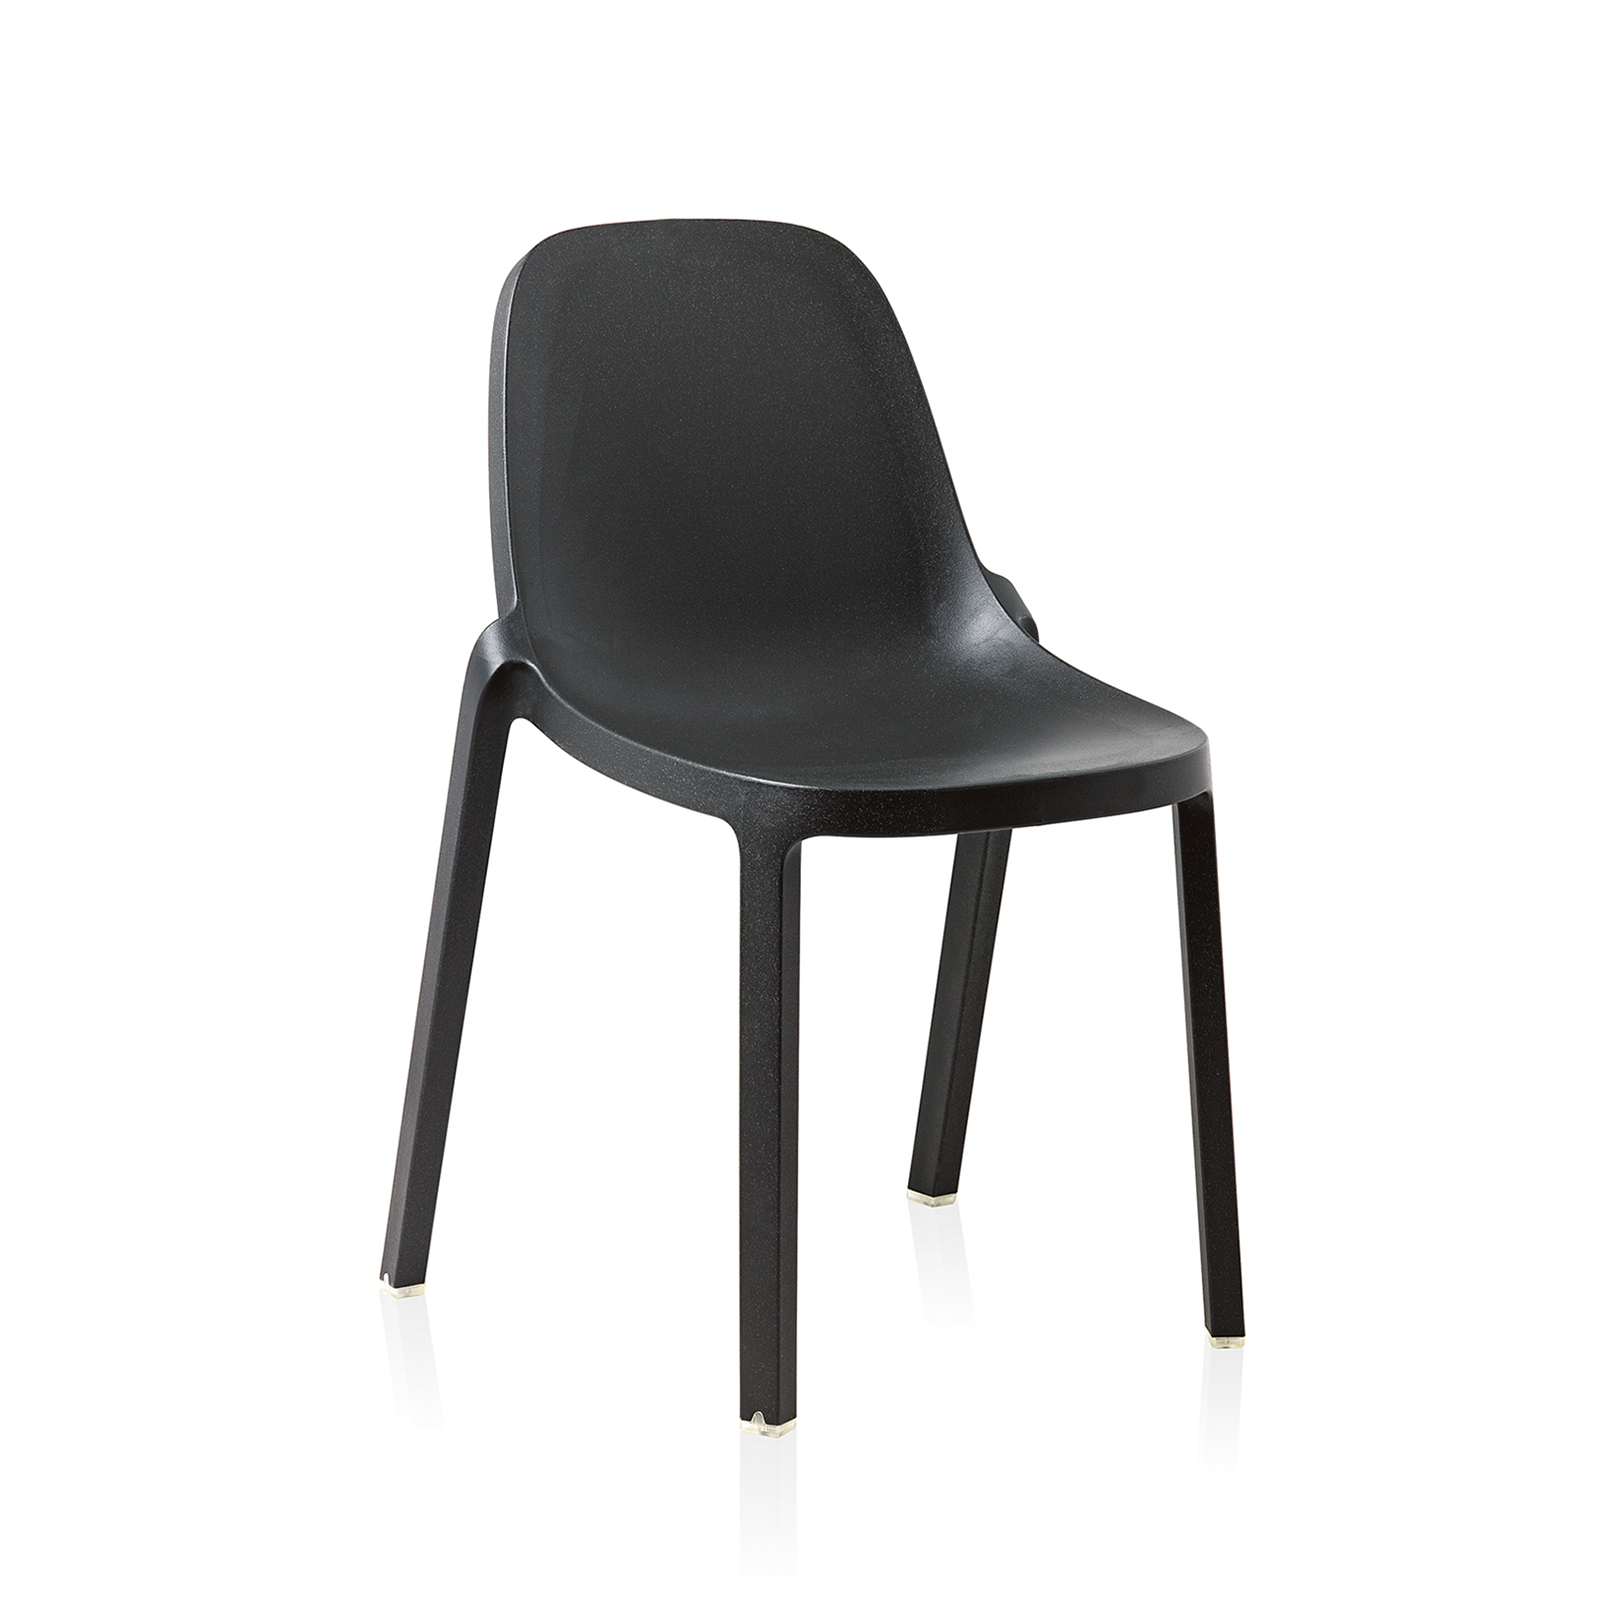 Emeco Broom Stacking Chair 史塔克系列 弧面 可堆疊 單椅